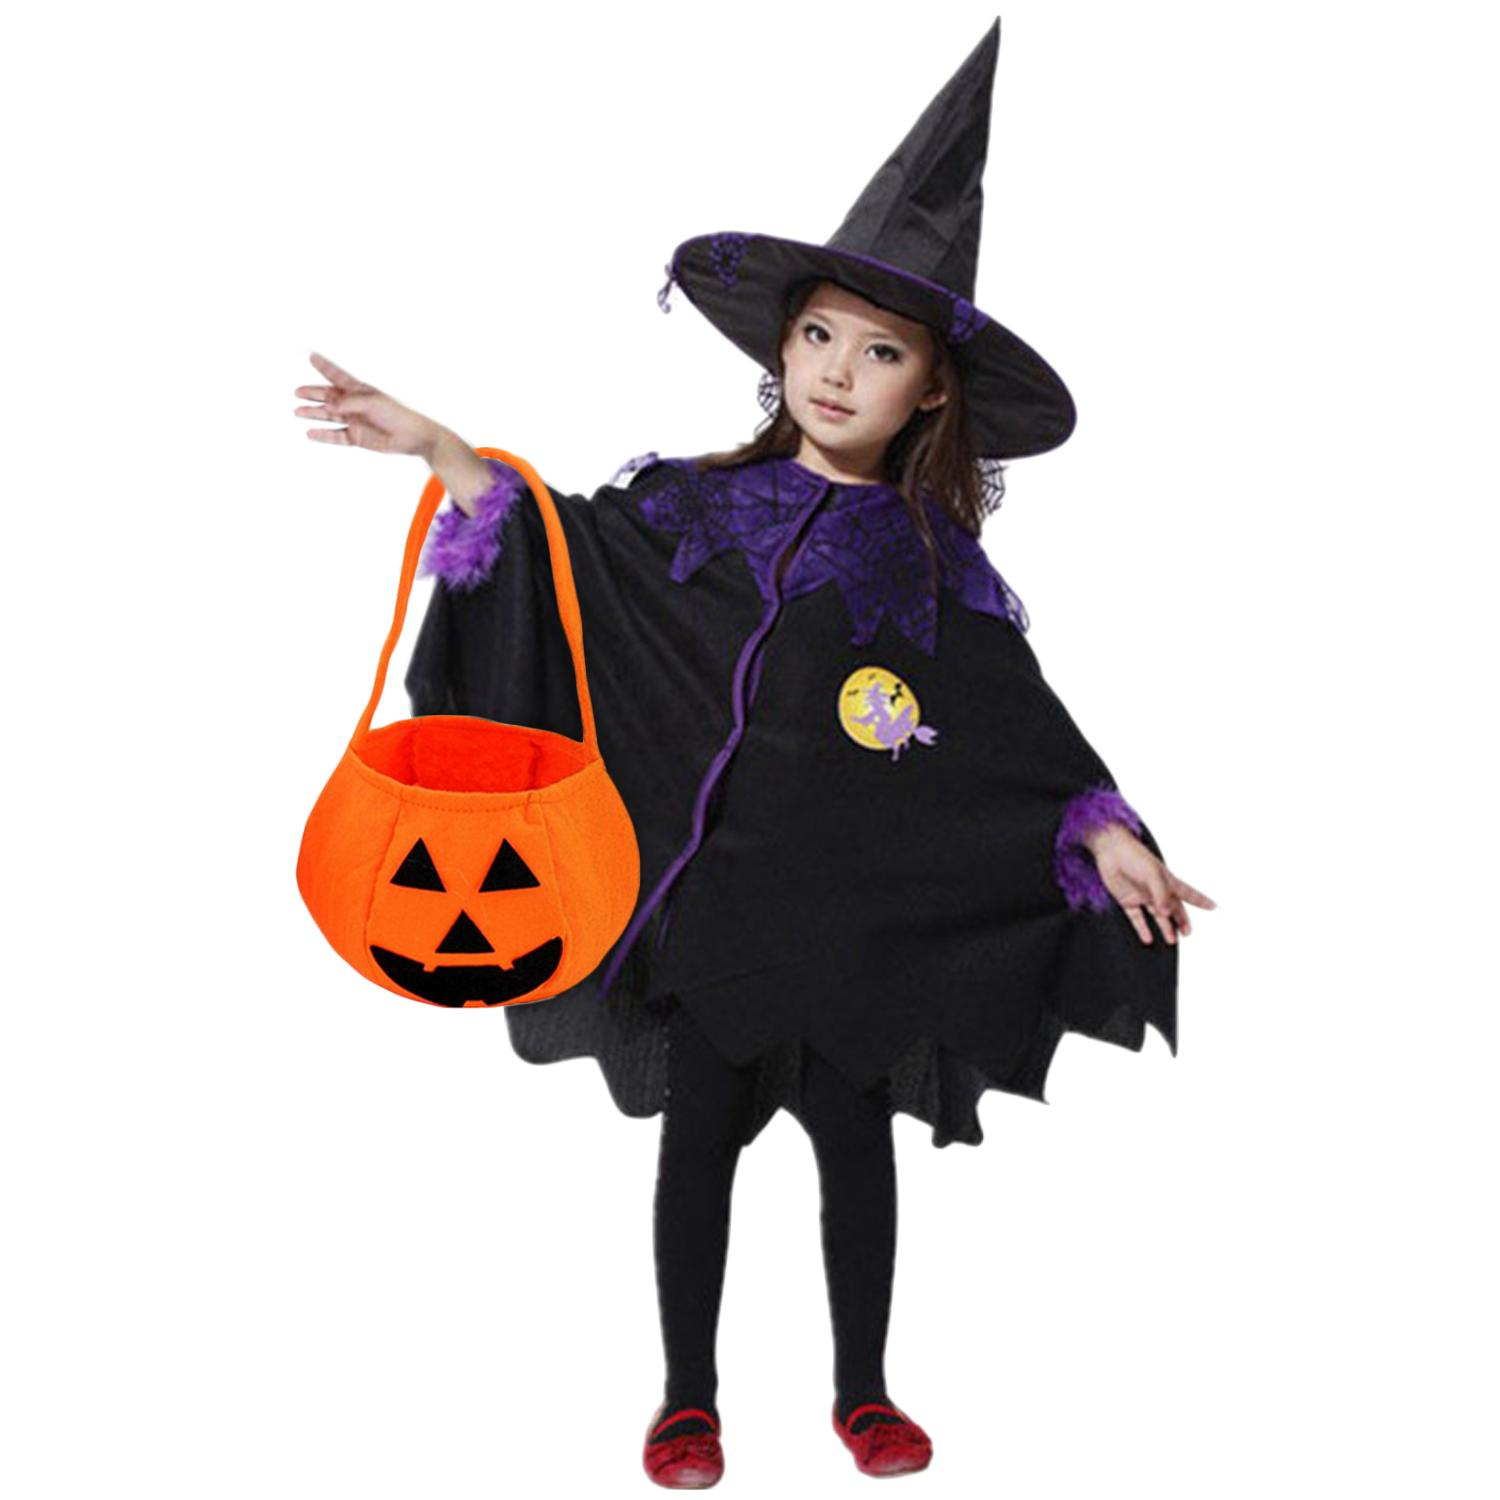 character costumes for sale - costumes for kids online brands